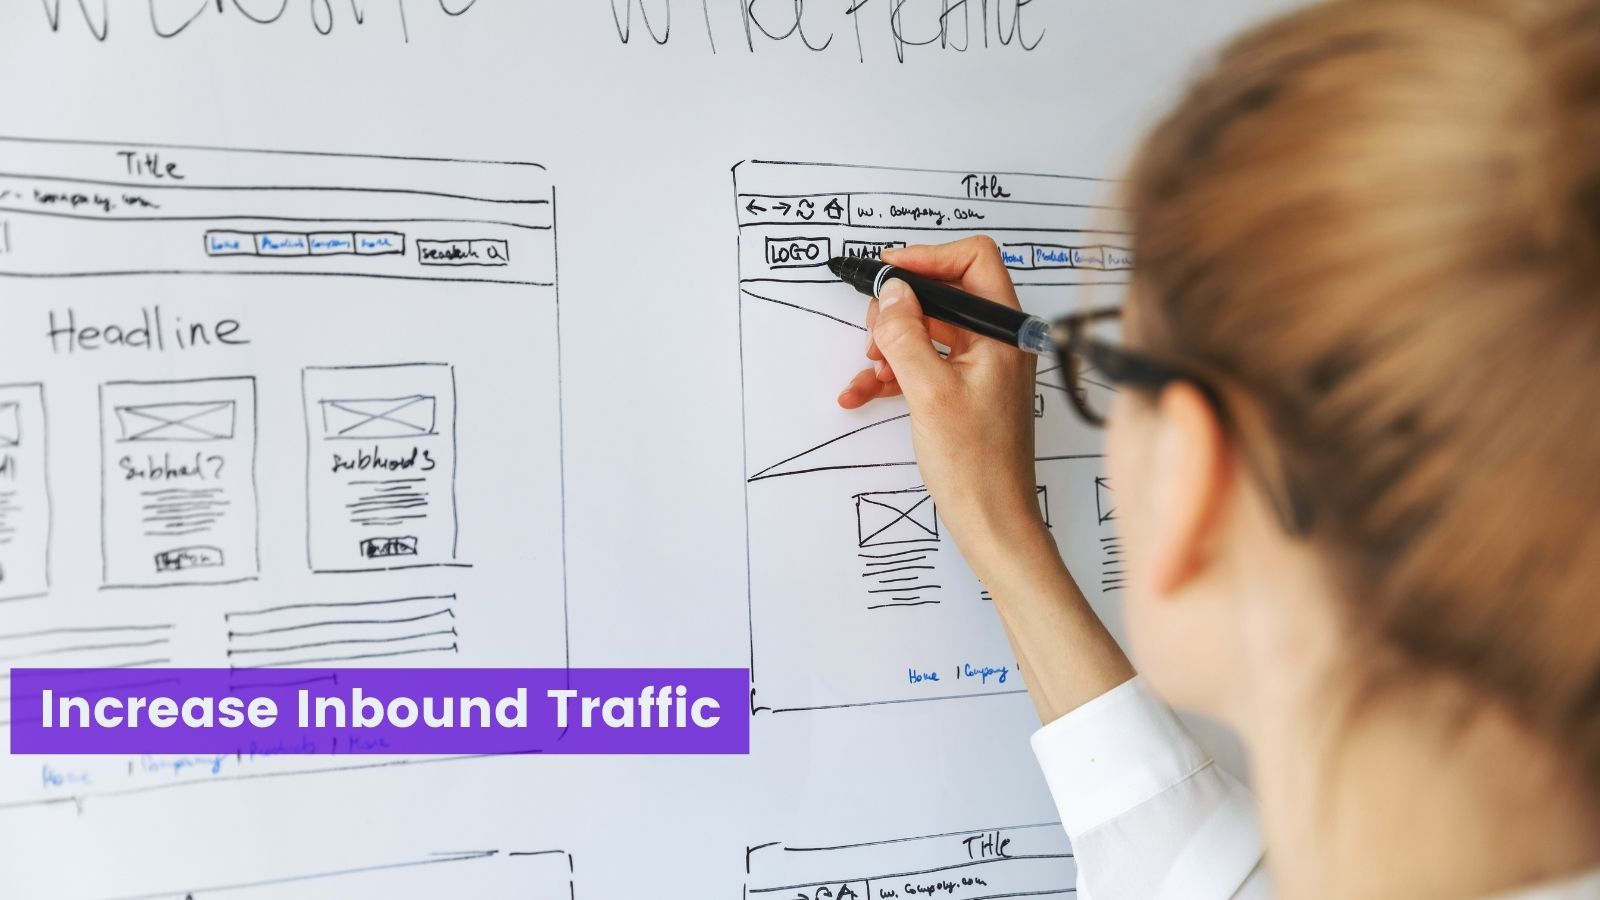 Increase inbound traffic with UX on agilitycms.com